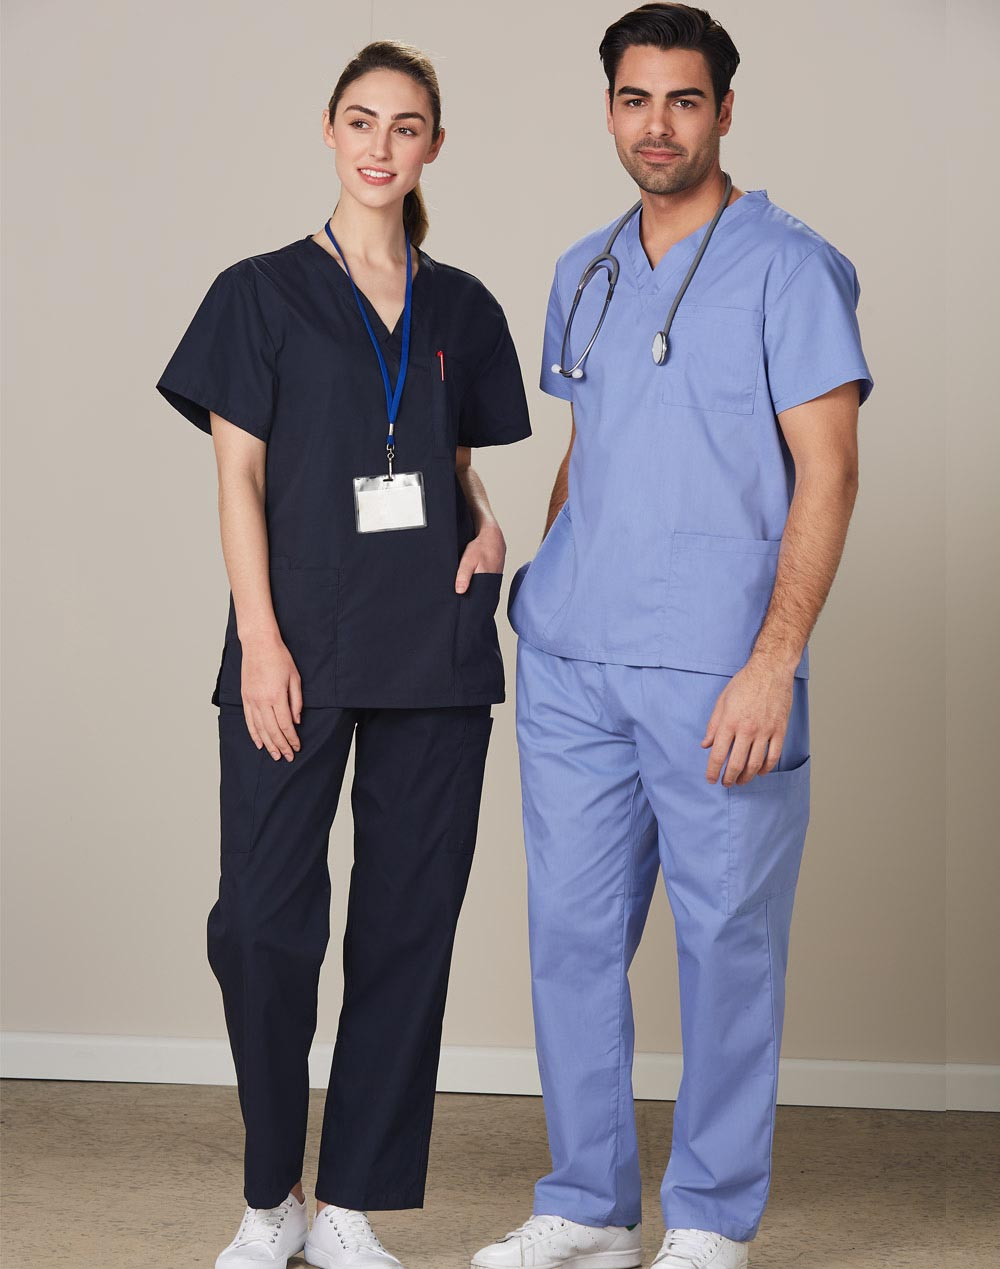 Get Unisex Scrubs Pants Online in Perth, Australia